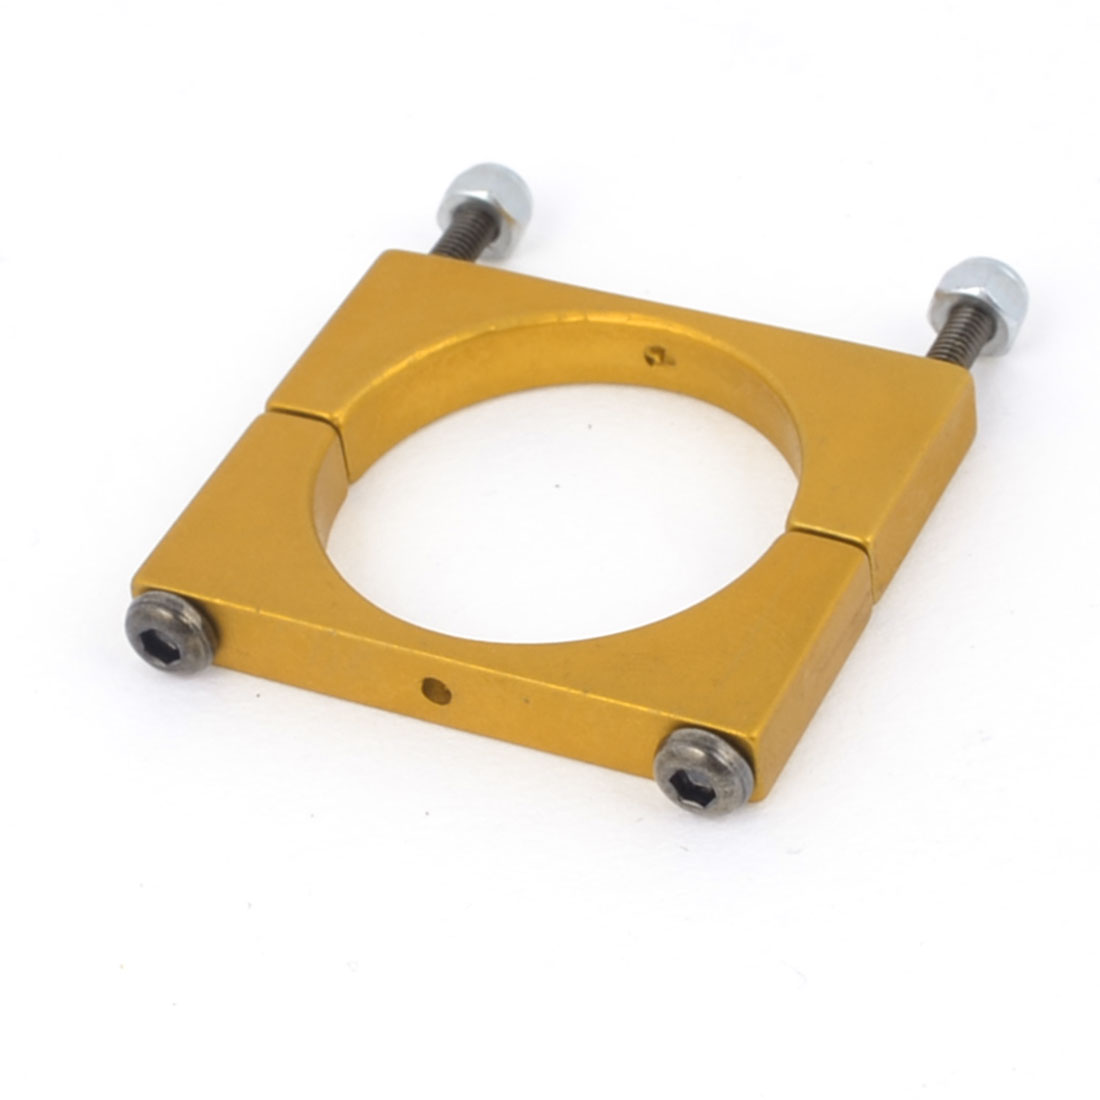 25mm Yellow Aluminum Clamp for Carbon Fiber Tube Quadcopter Hexacopter Octocopter